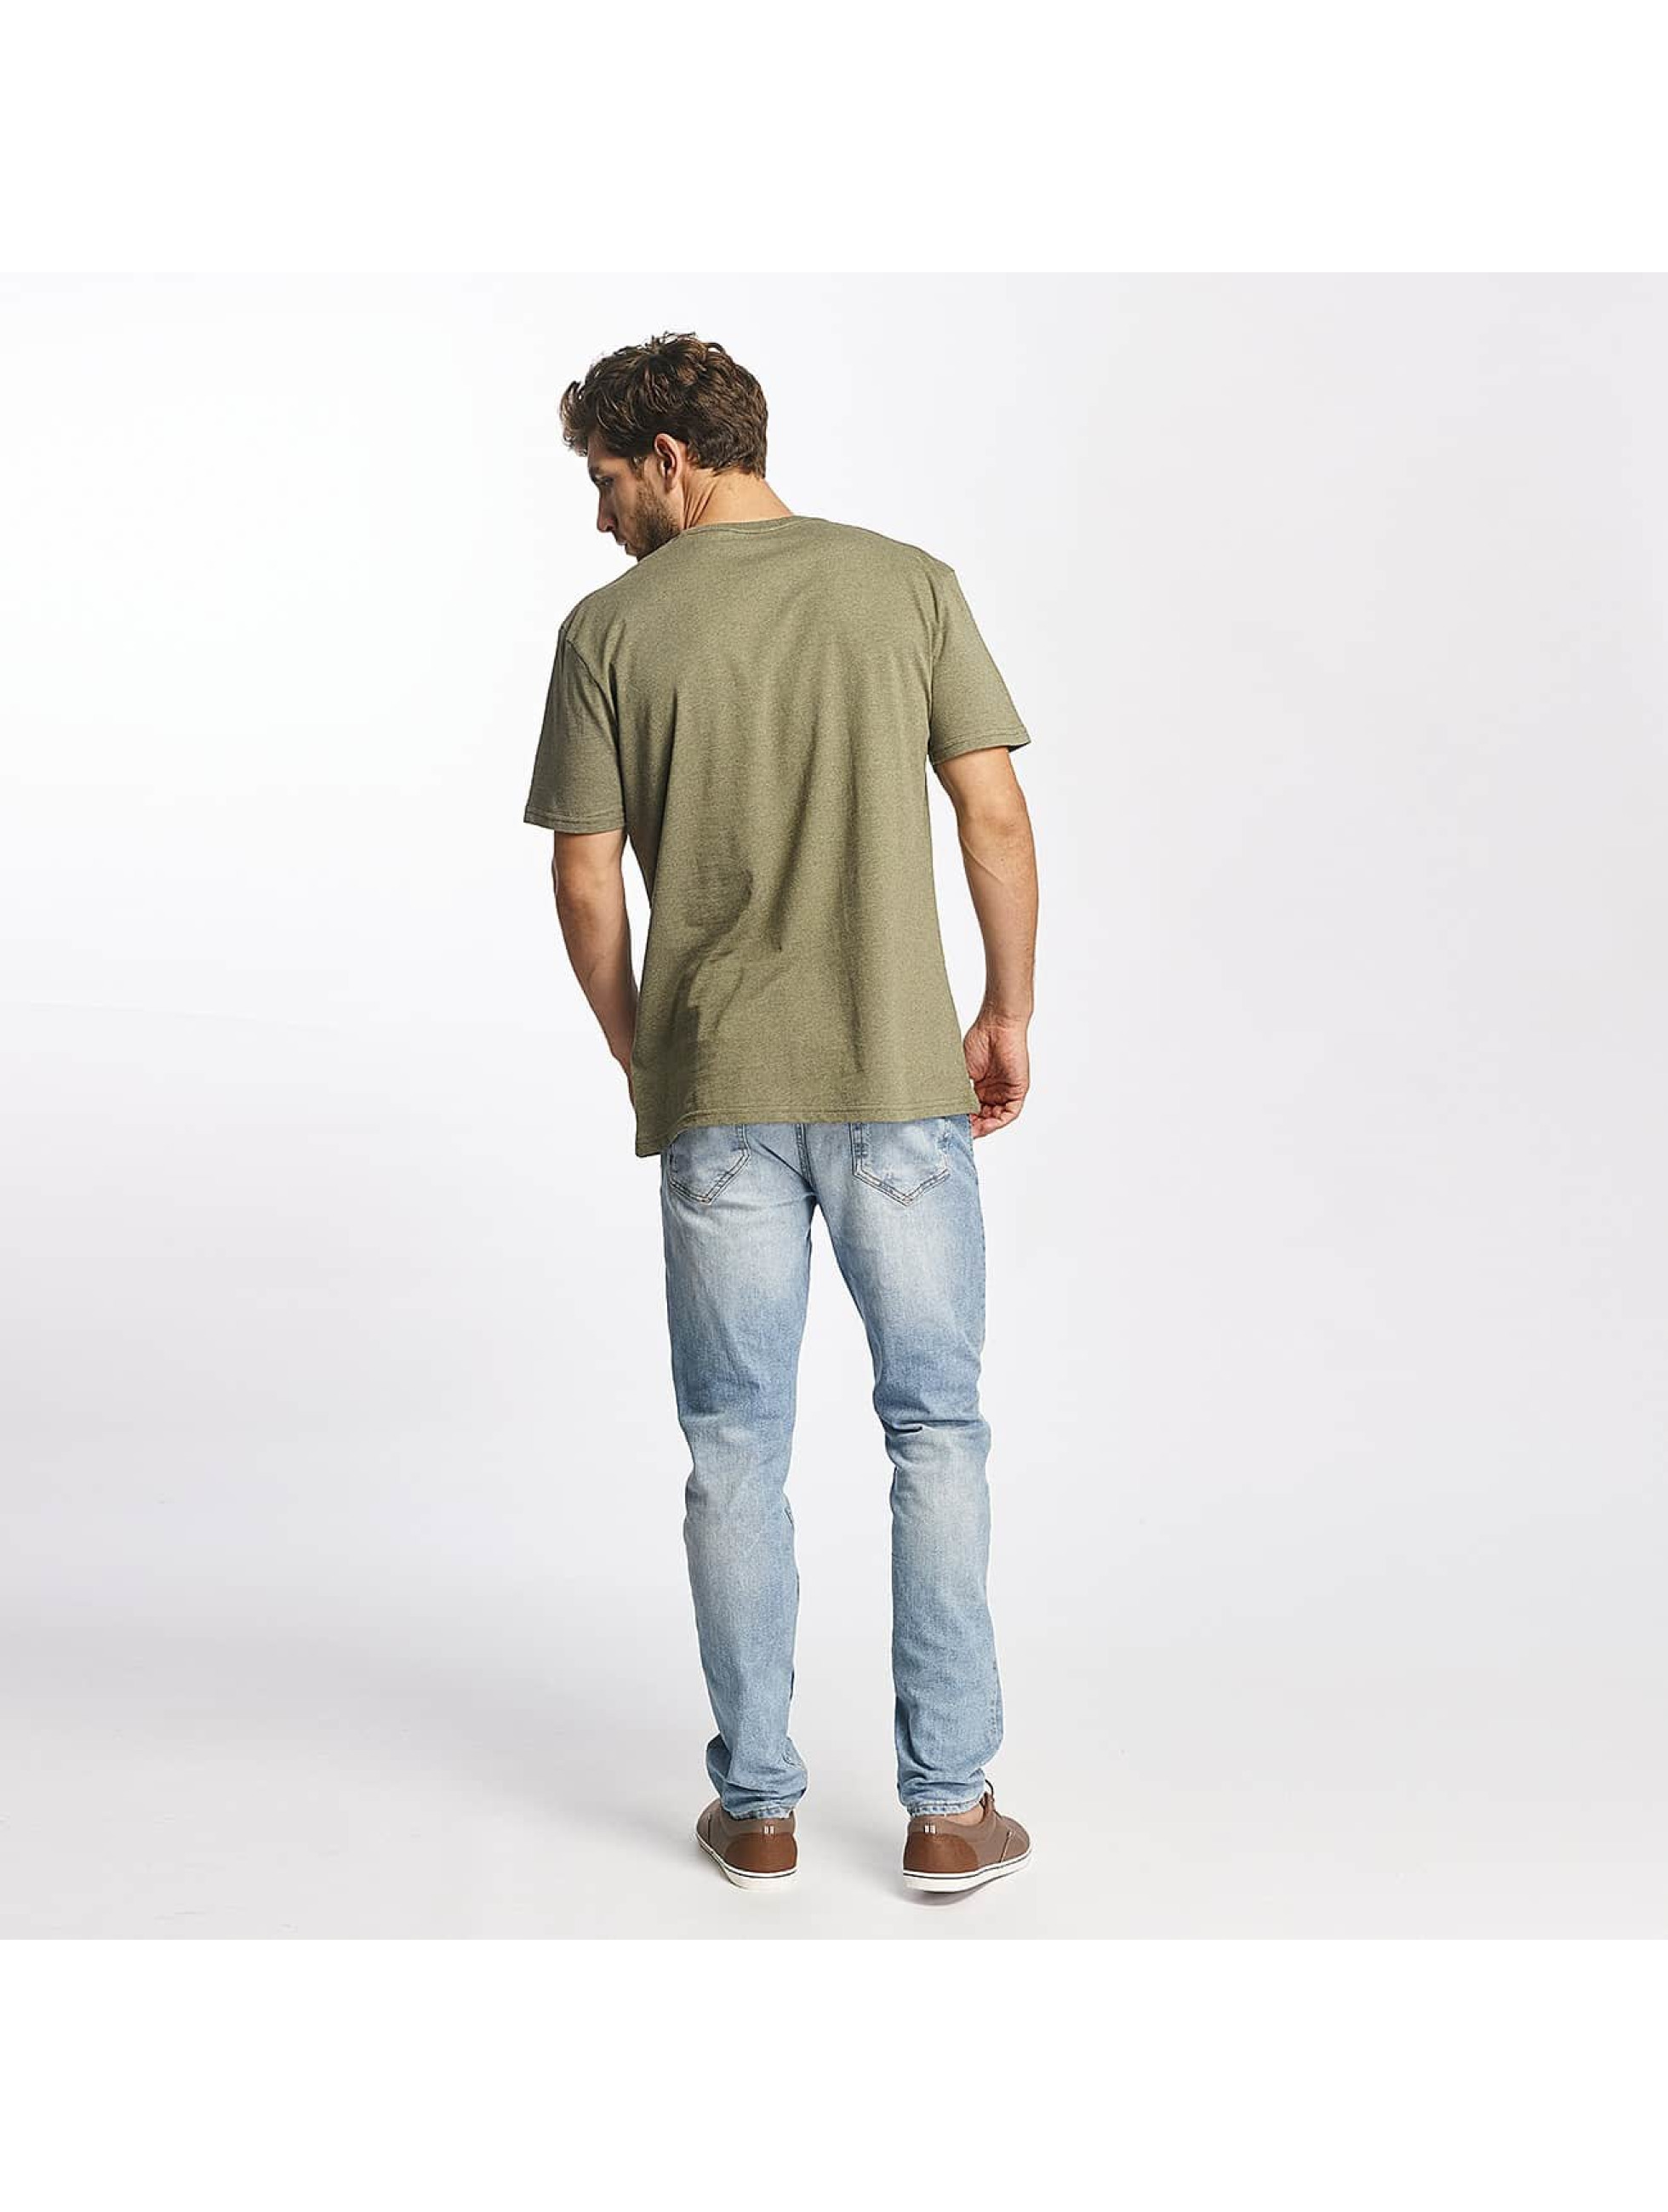 Quiksilver T-Shirt Classic Sea Tales olive